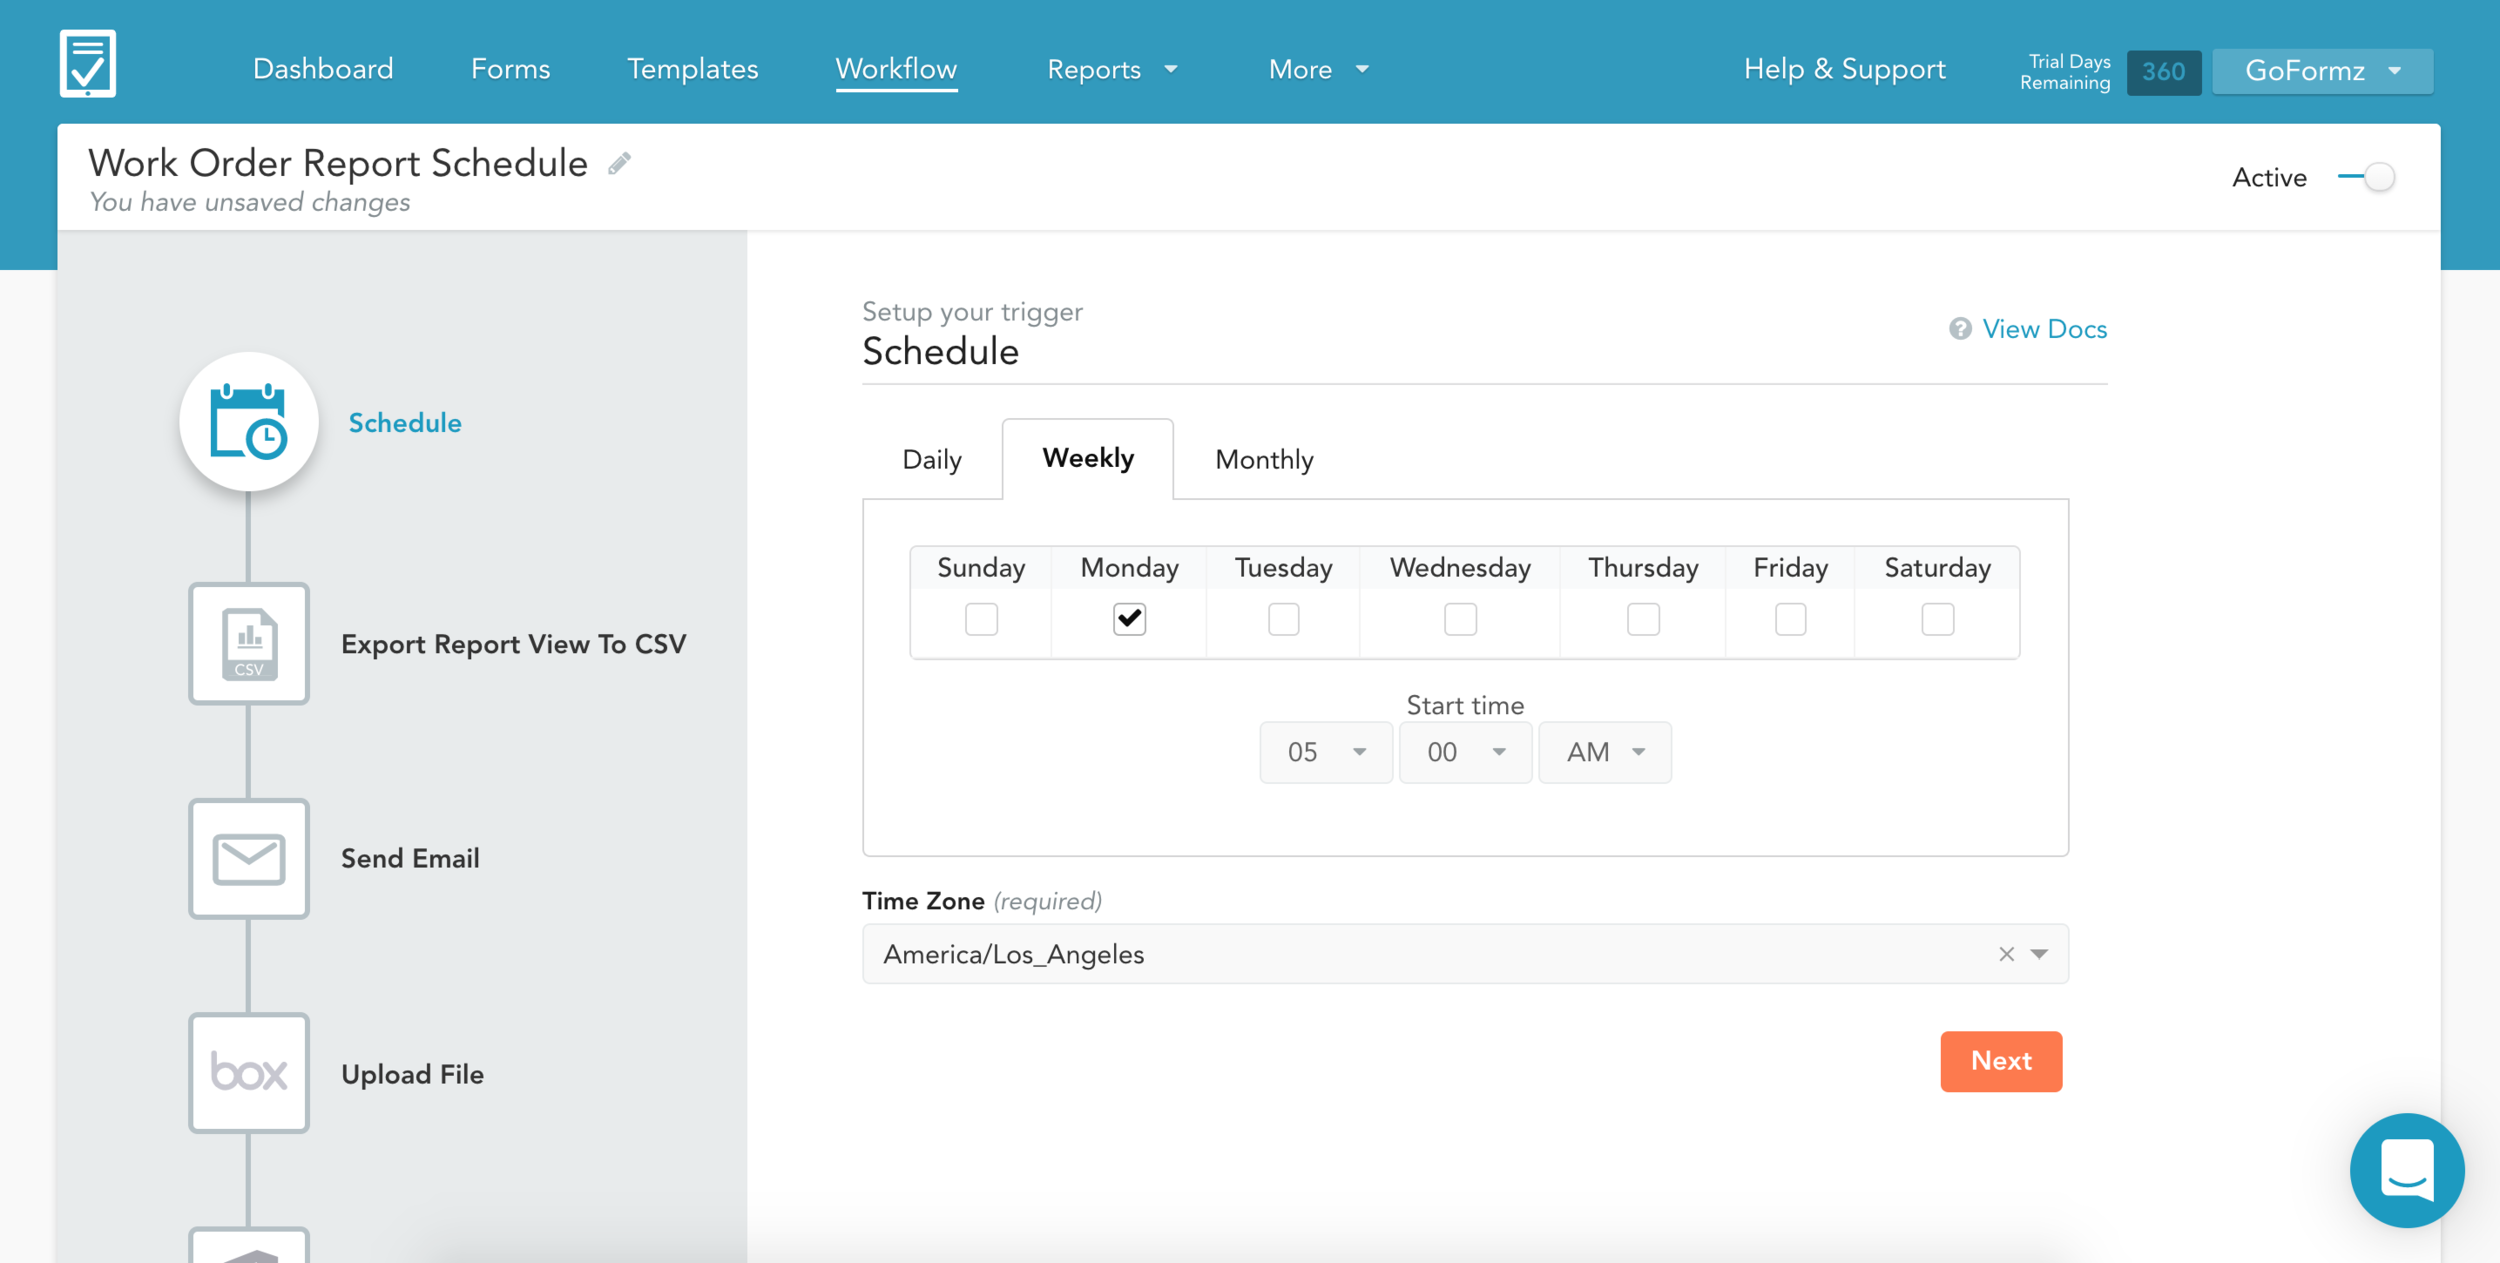 You can schedule your workflow to run a report on a daily, weekly, or monthly basis